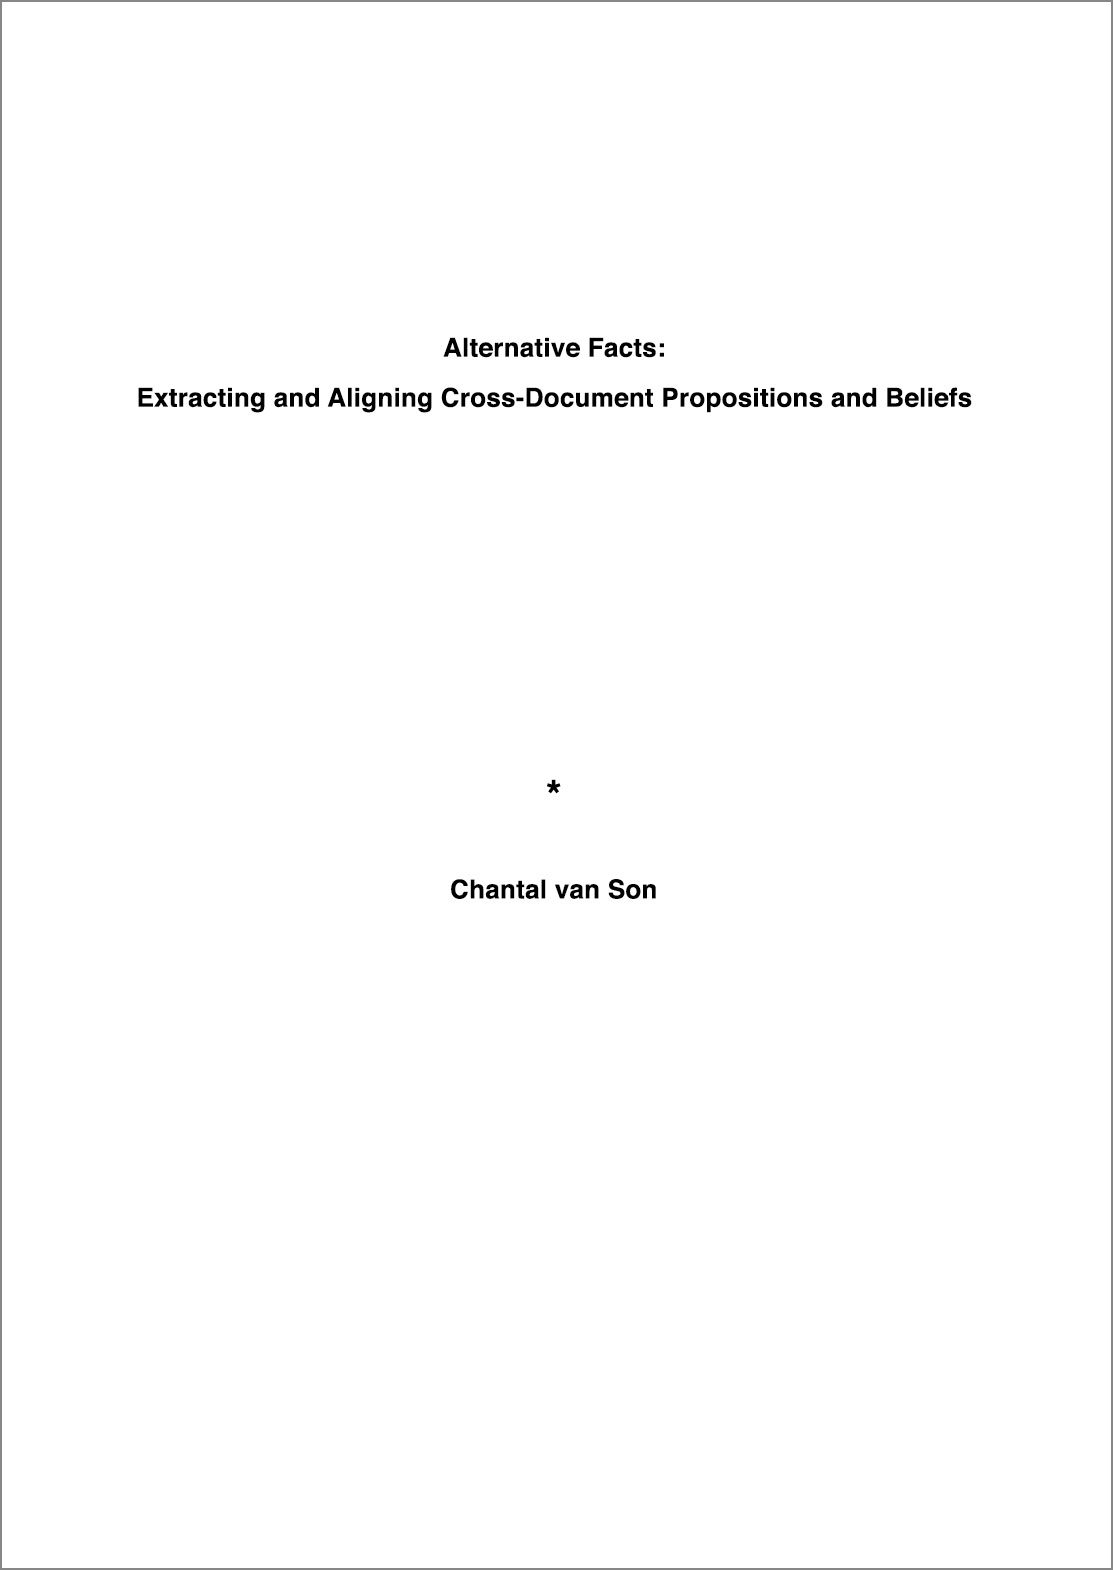 Alternative Facts: Extracting and Aligning Cross-Document Propositions and Beliefs